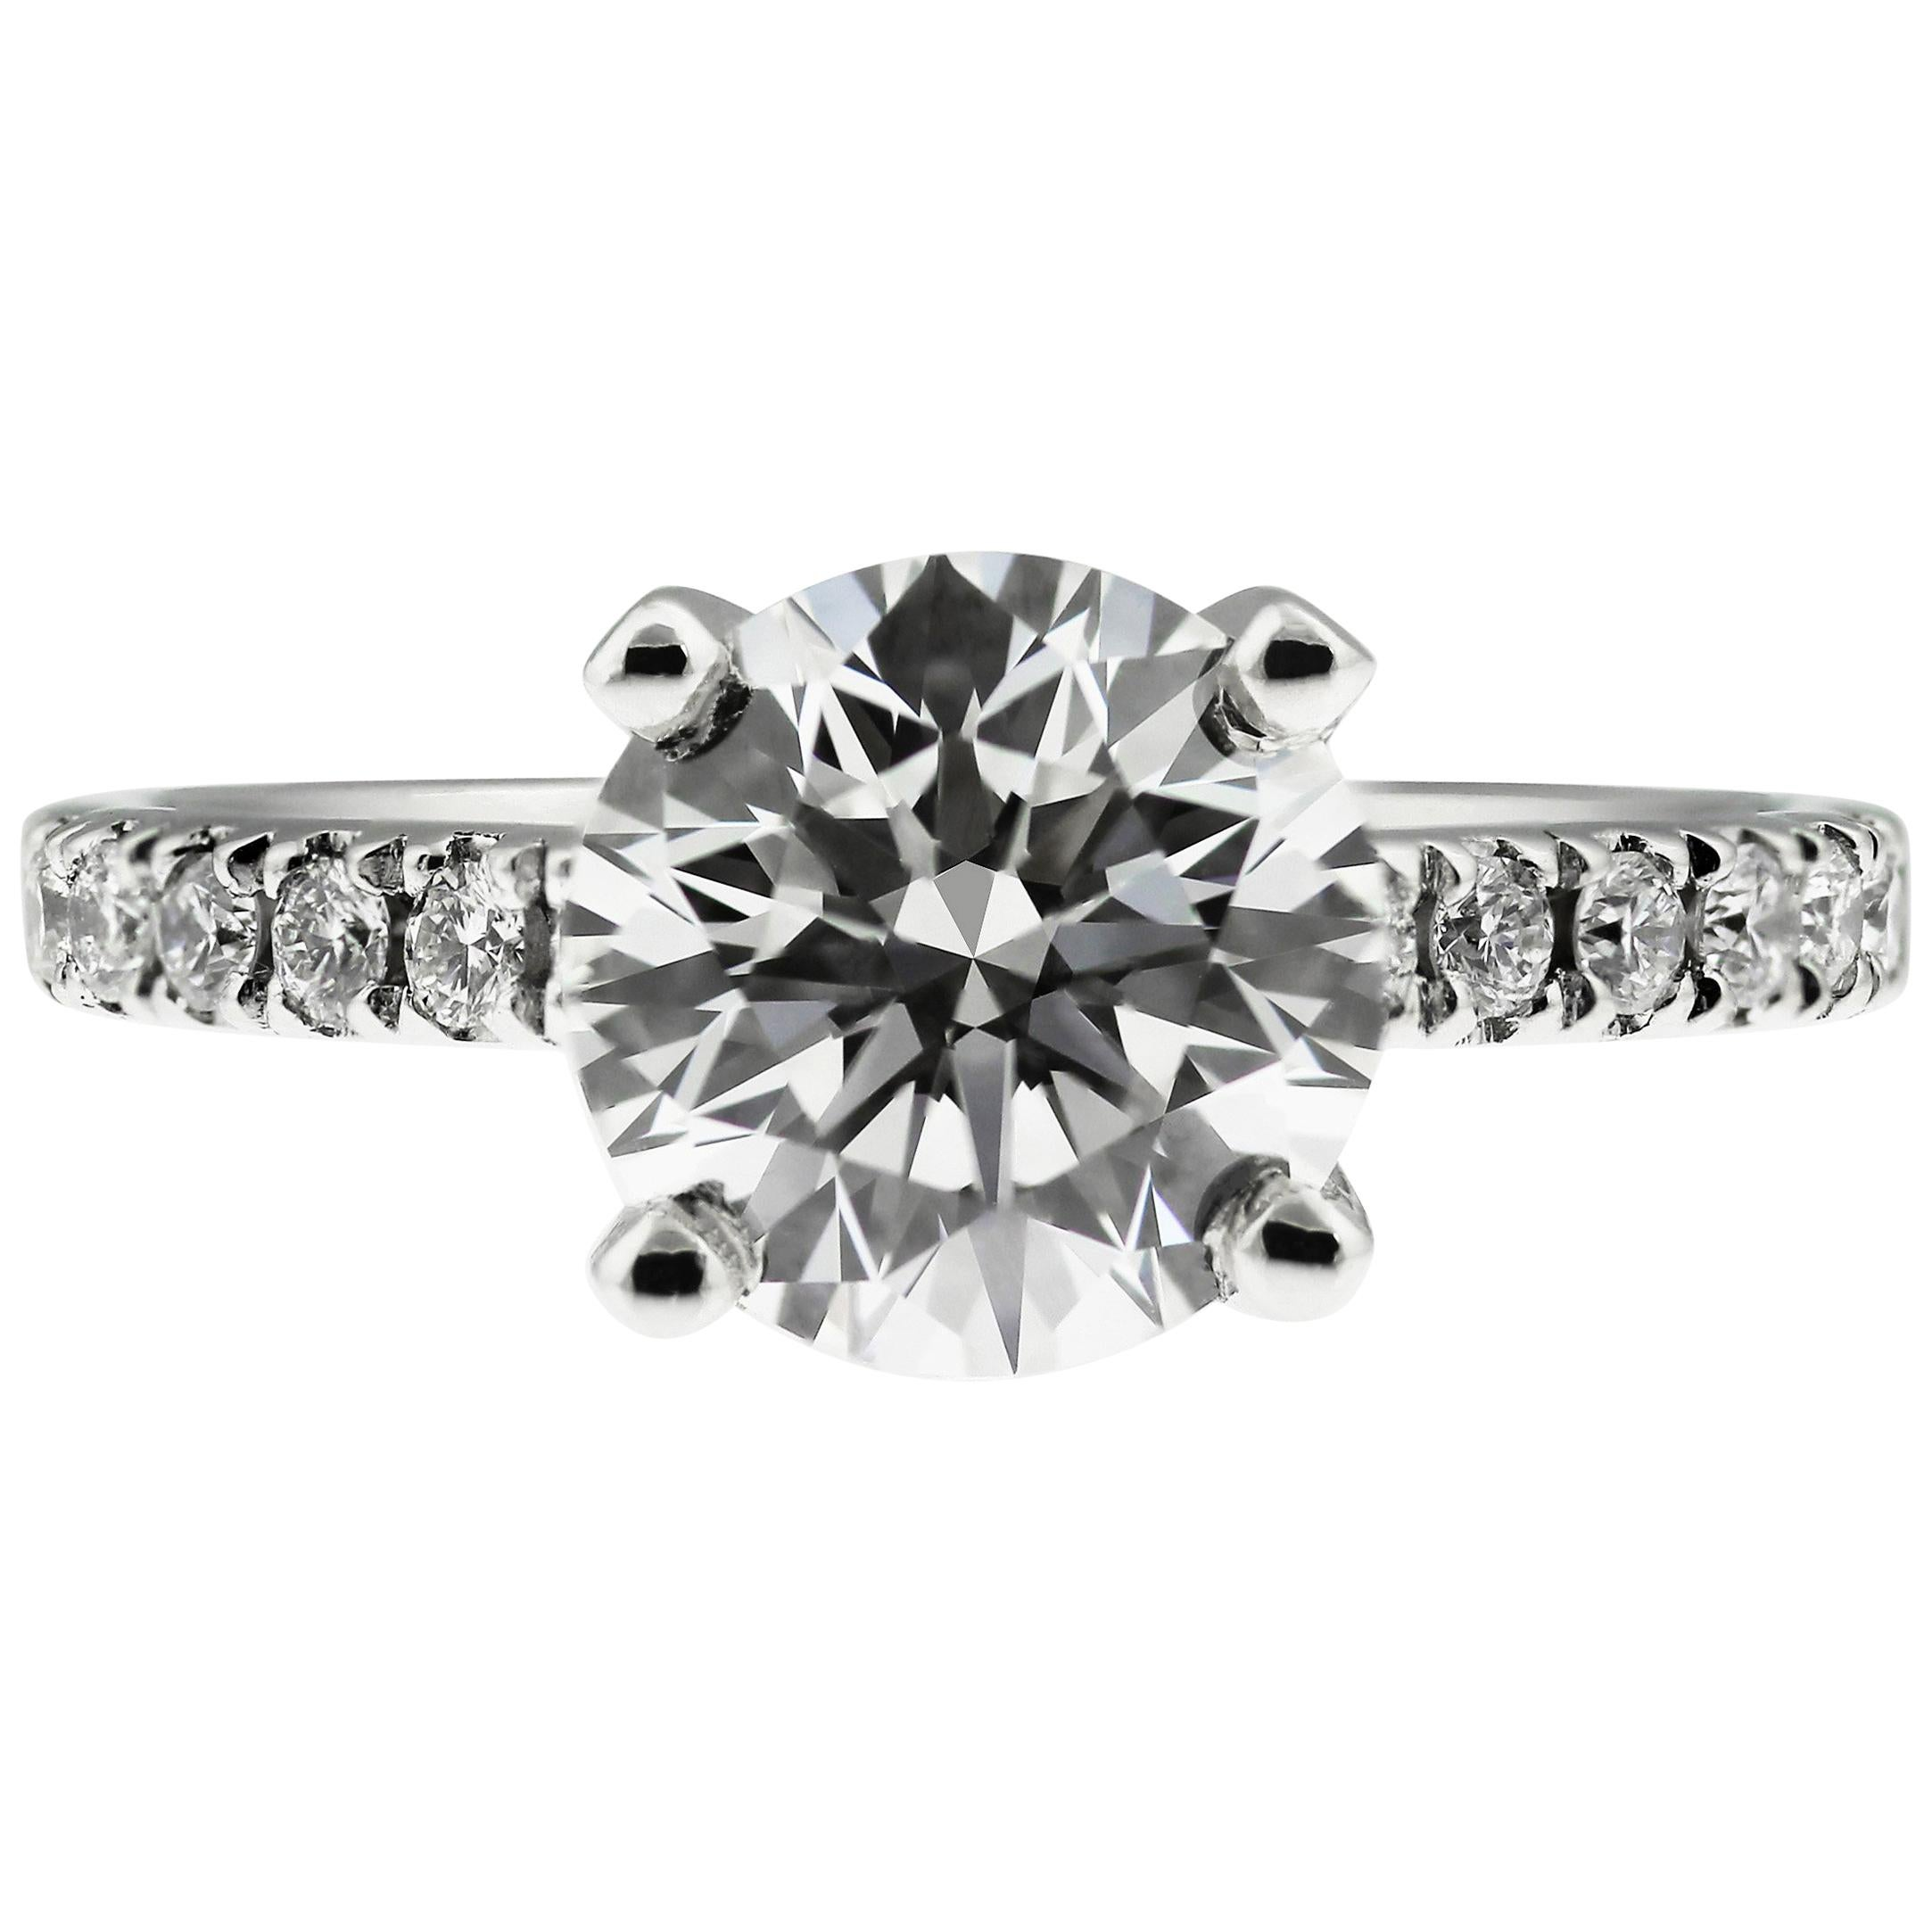 GIA Diamond 2.2 Carats G VS1 Single Stone Solitaire Engagement Ring